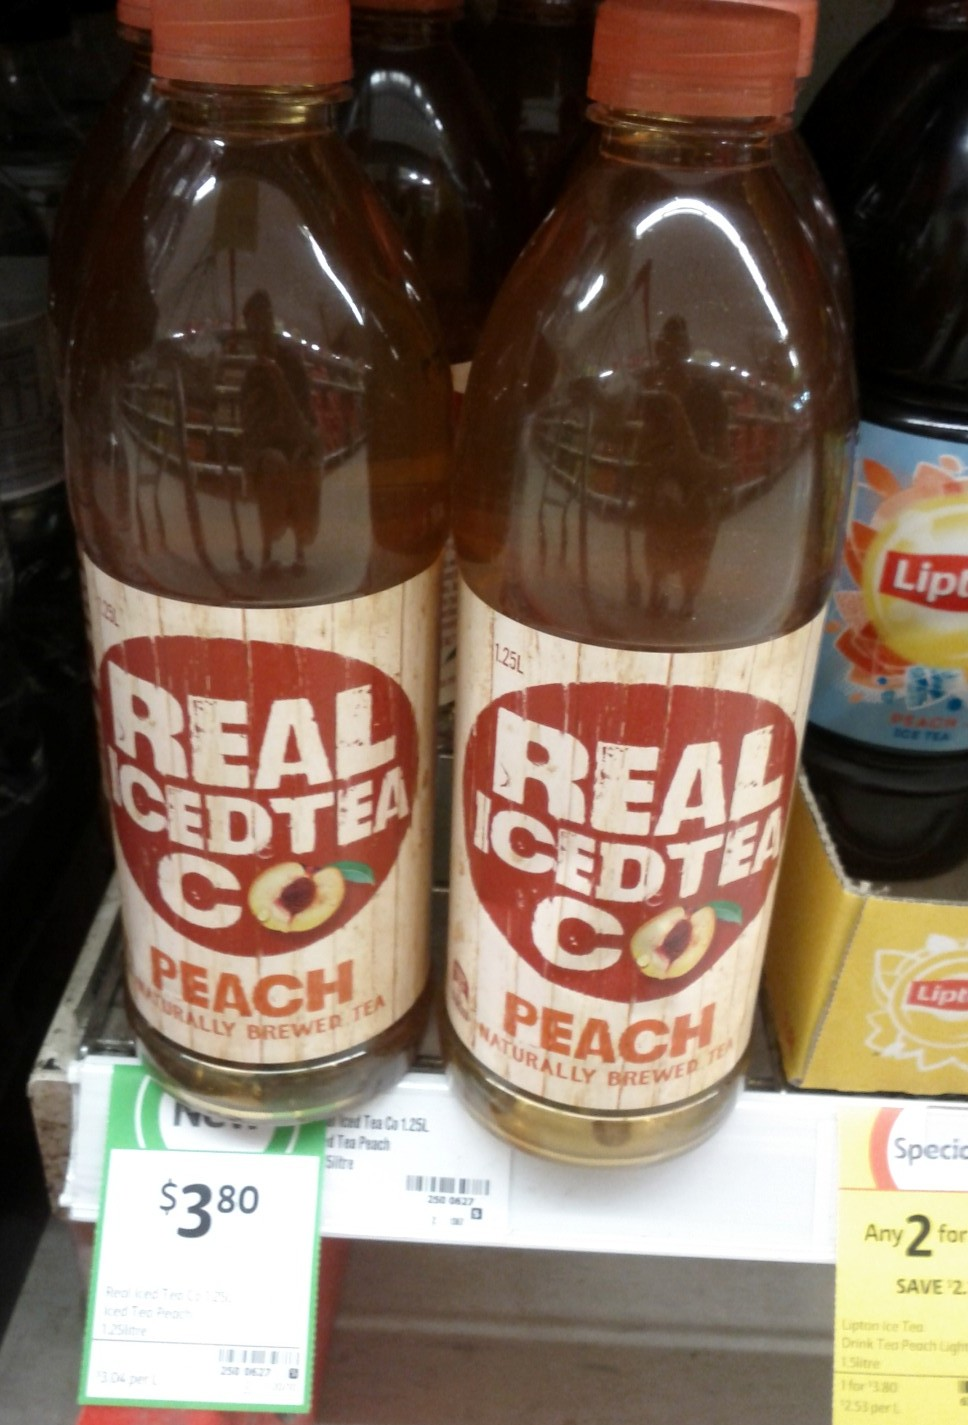 Real Iced Tea Co 1.25L Peach